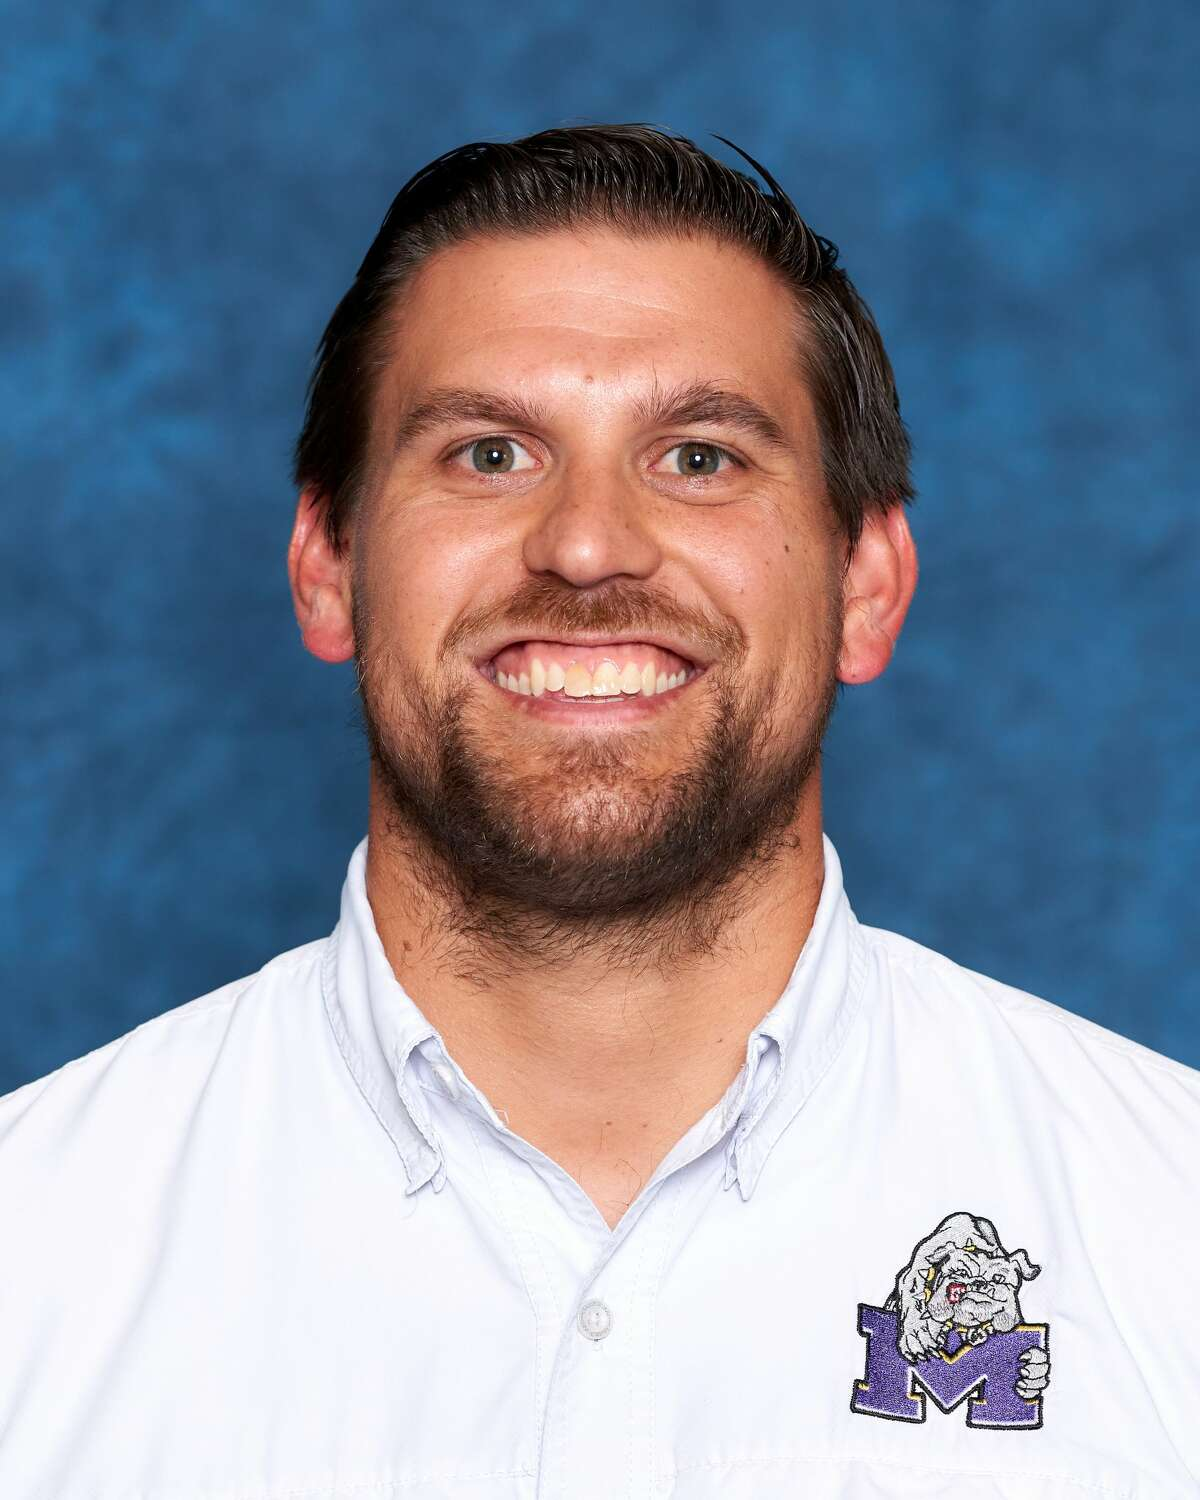 Jared Andrews of Midland High was selected as the region's High School Assistant Principal of the year.